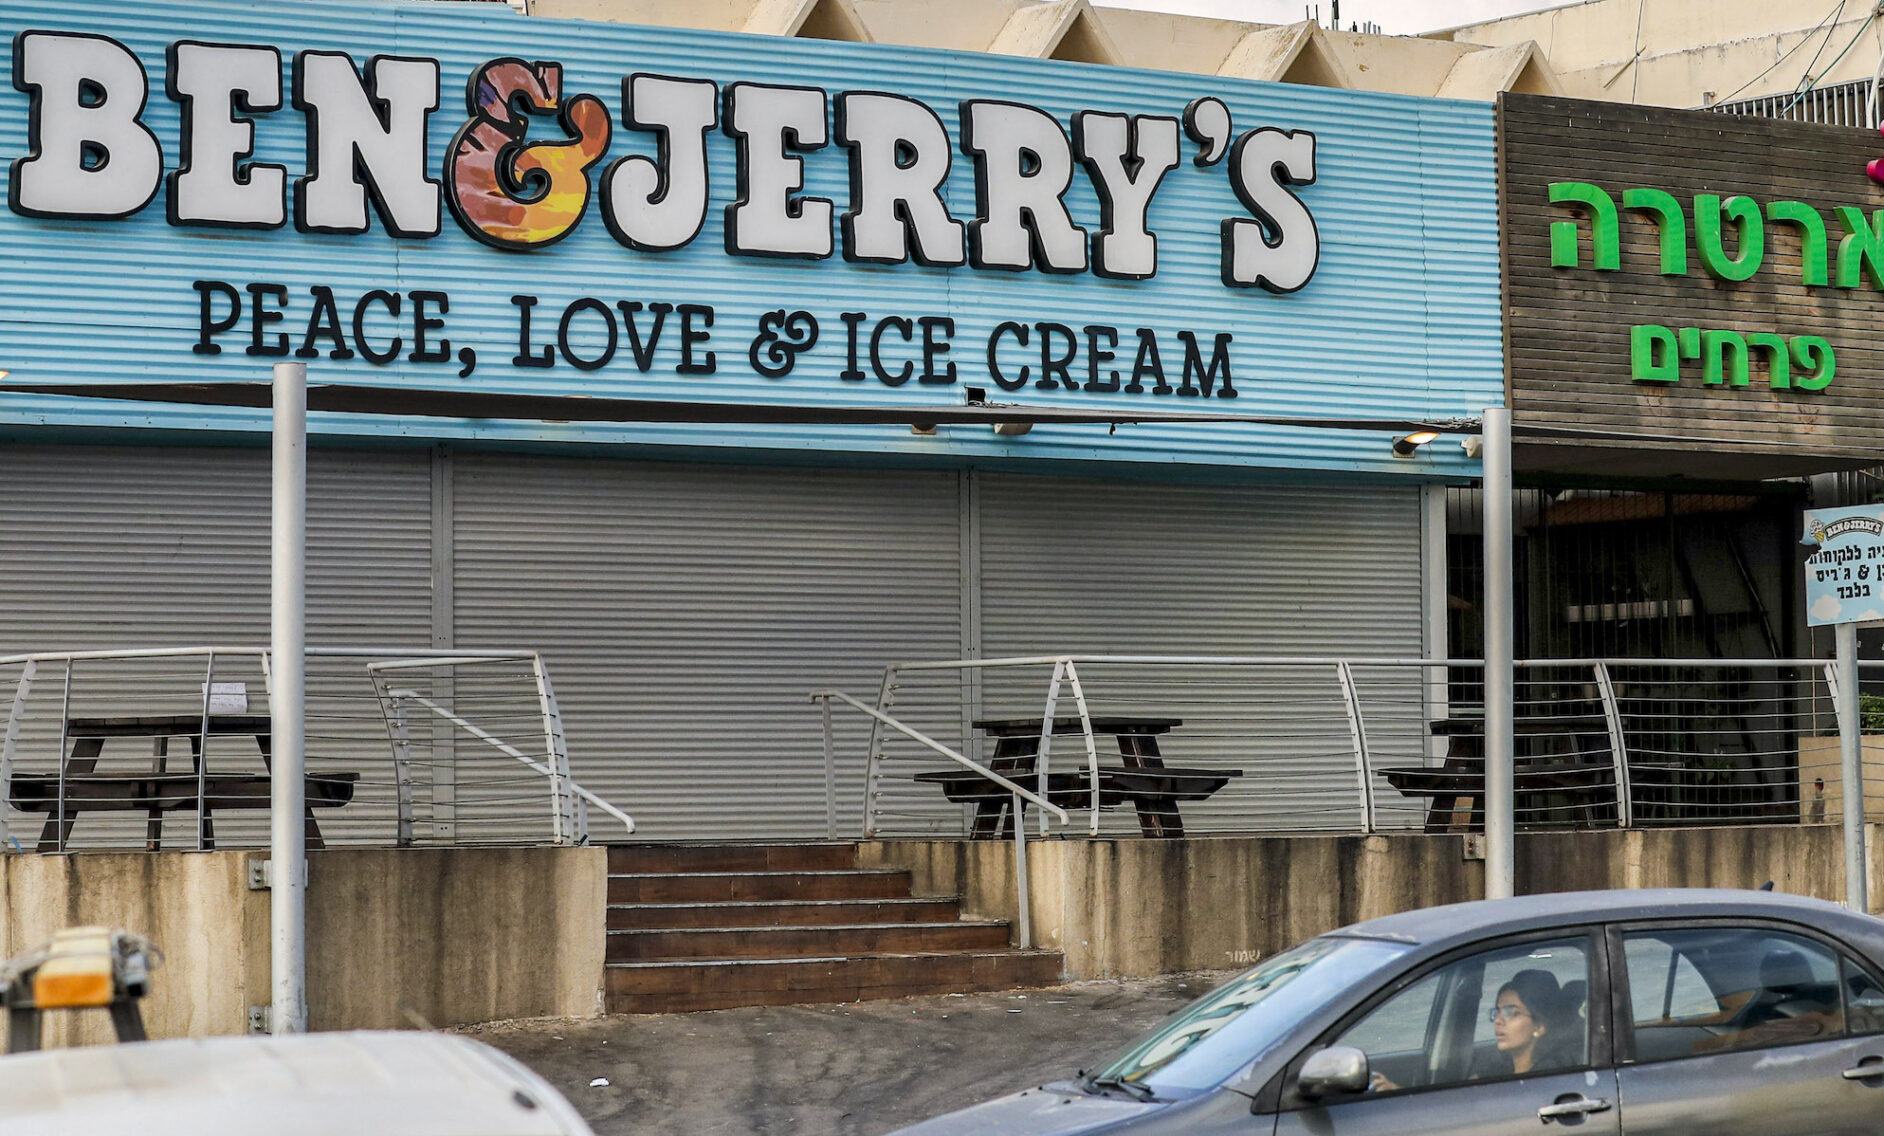 Motorists drive past a closed Ben & Jerry's ice-cream shop in the Israeli city of Yavne, south of Tel Aviv, July 23, 2021. (Photo/JTA-Ahmad Gharabli-AFP via Getty Images)